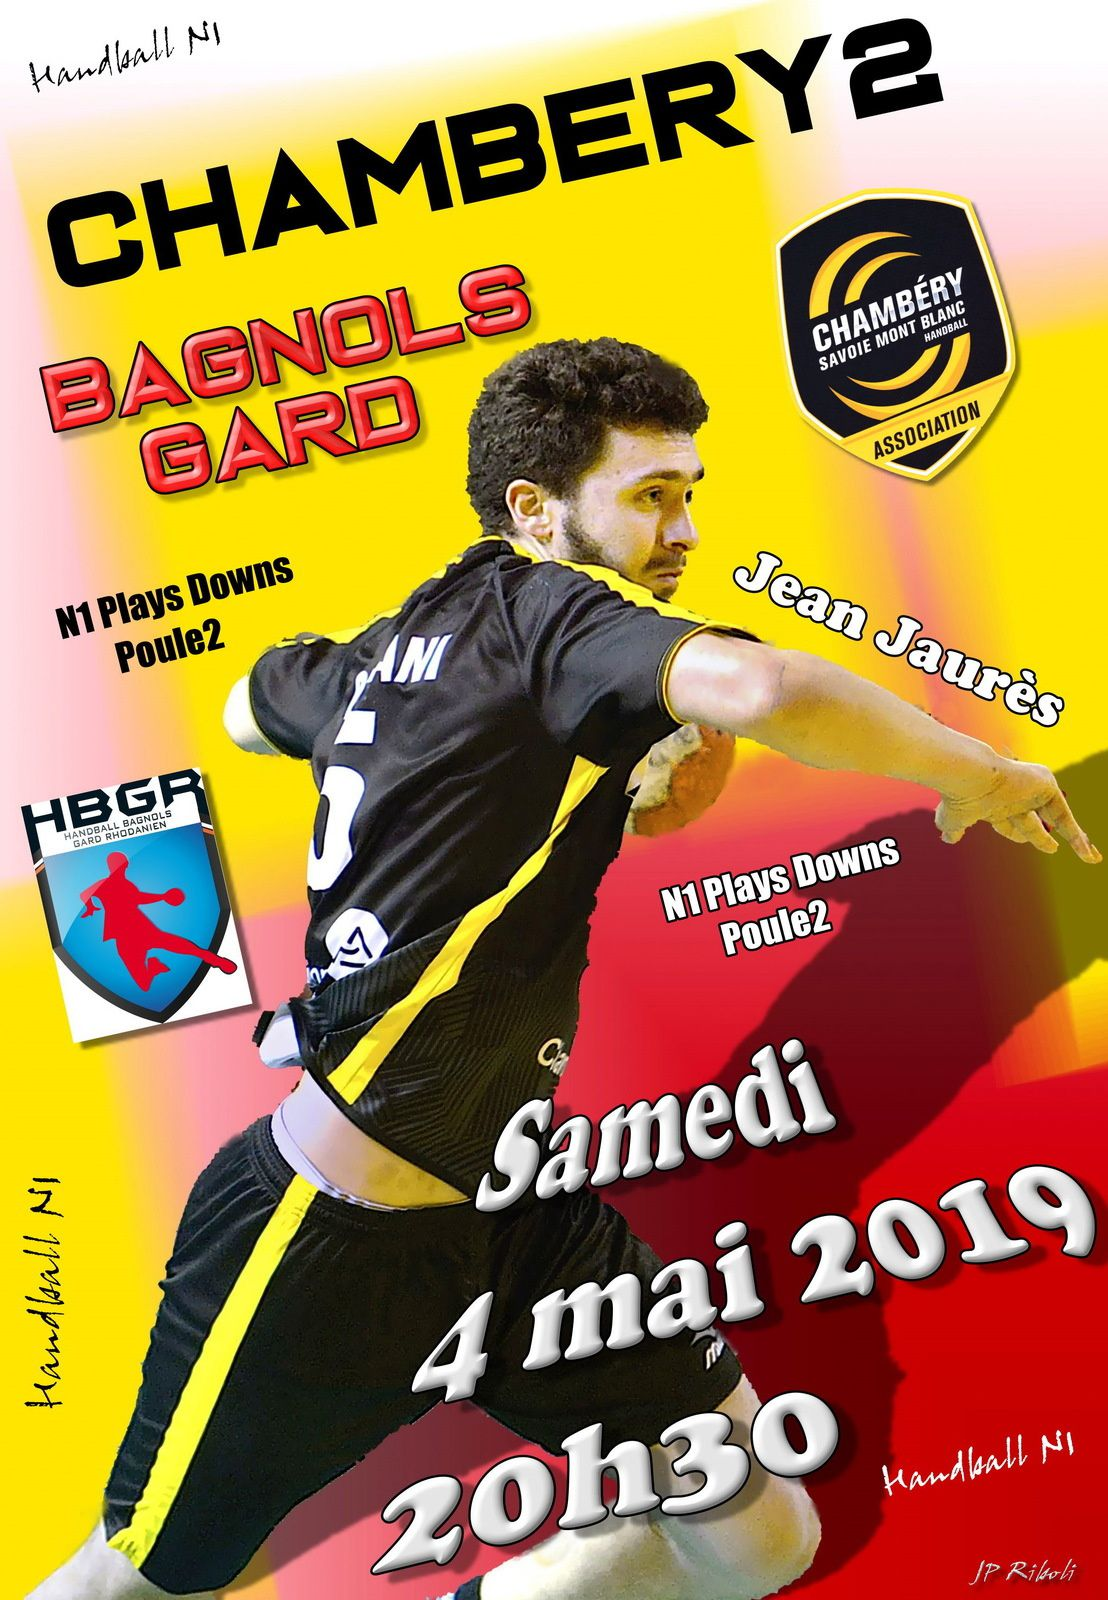 - 18FRANCE un match facile pour CHAMBERY contre l'entente LOIRE samedi 27 avril 2019